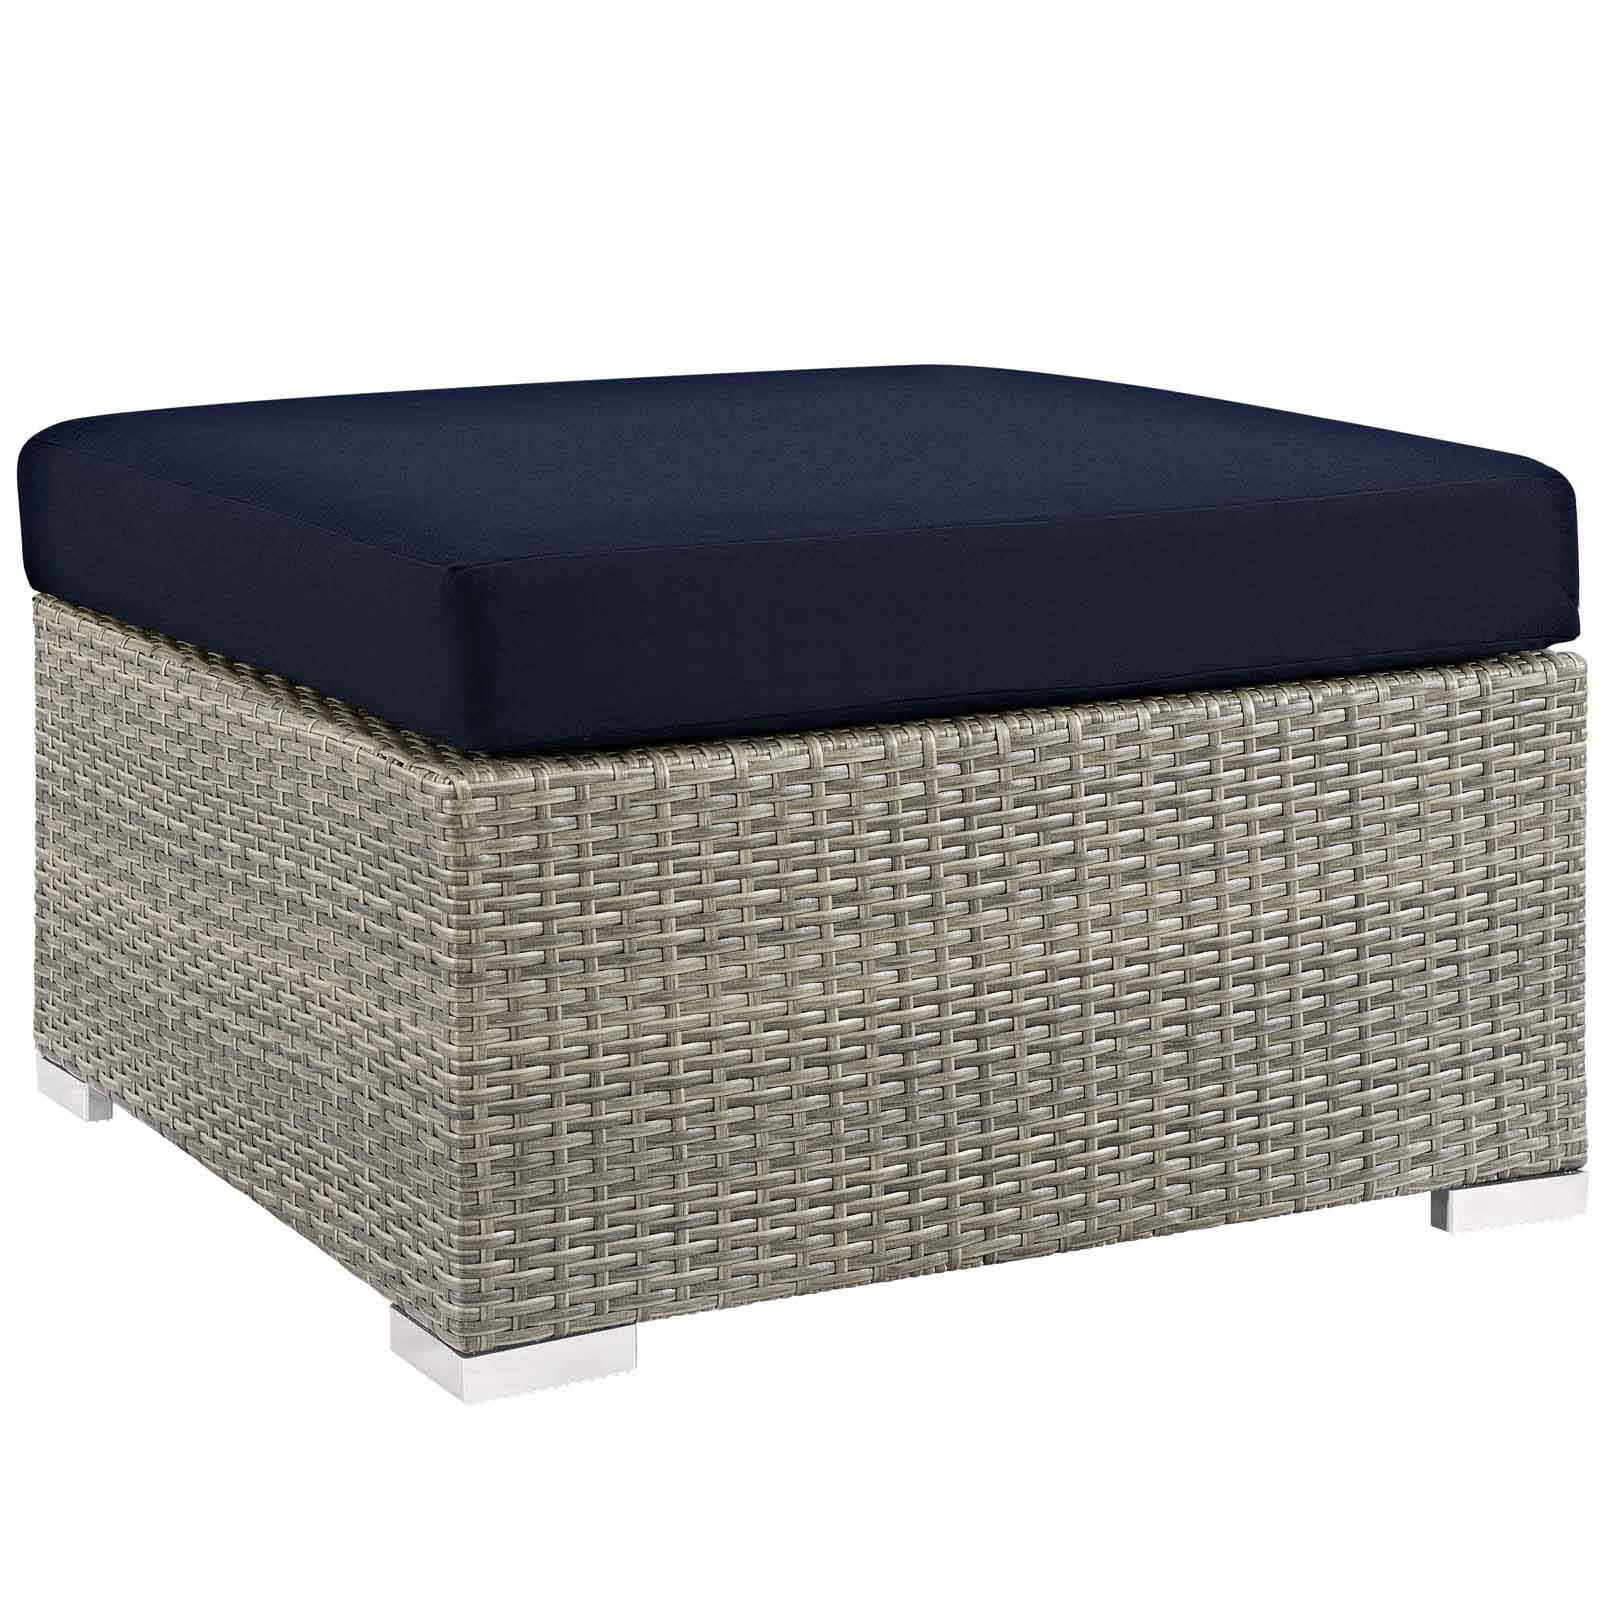 Modterior Outdoor Ottomans Repose Sunbrella